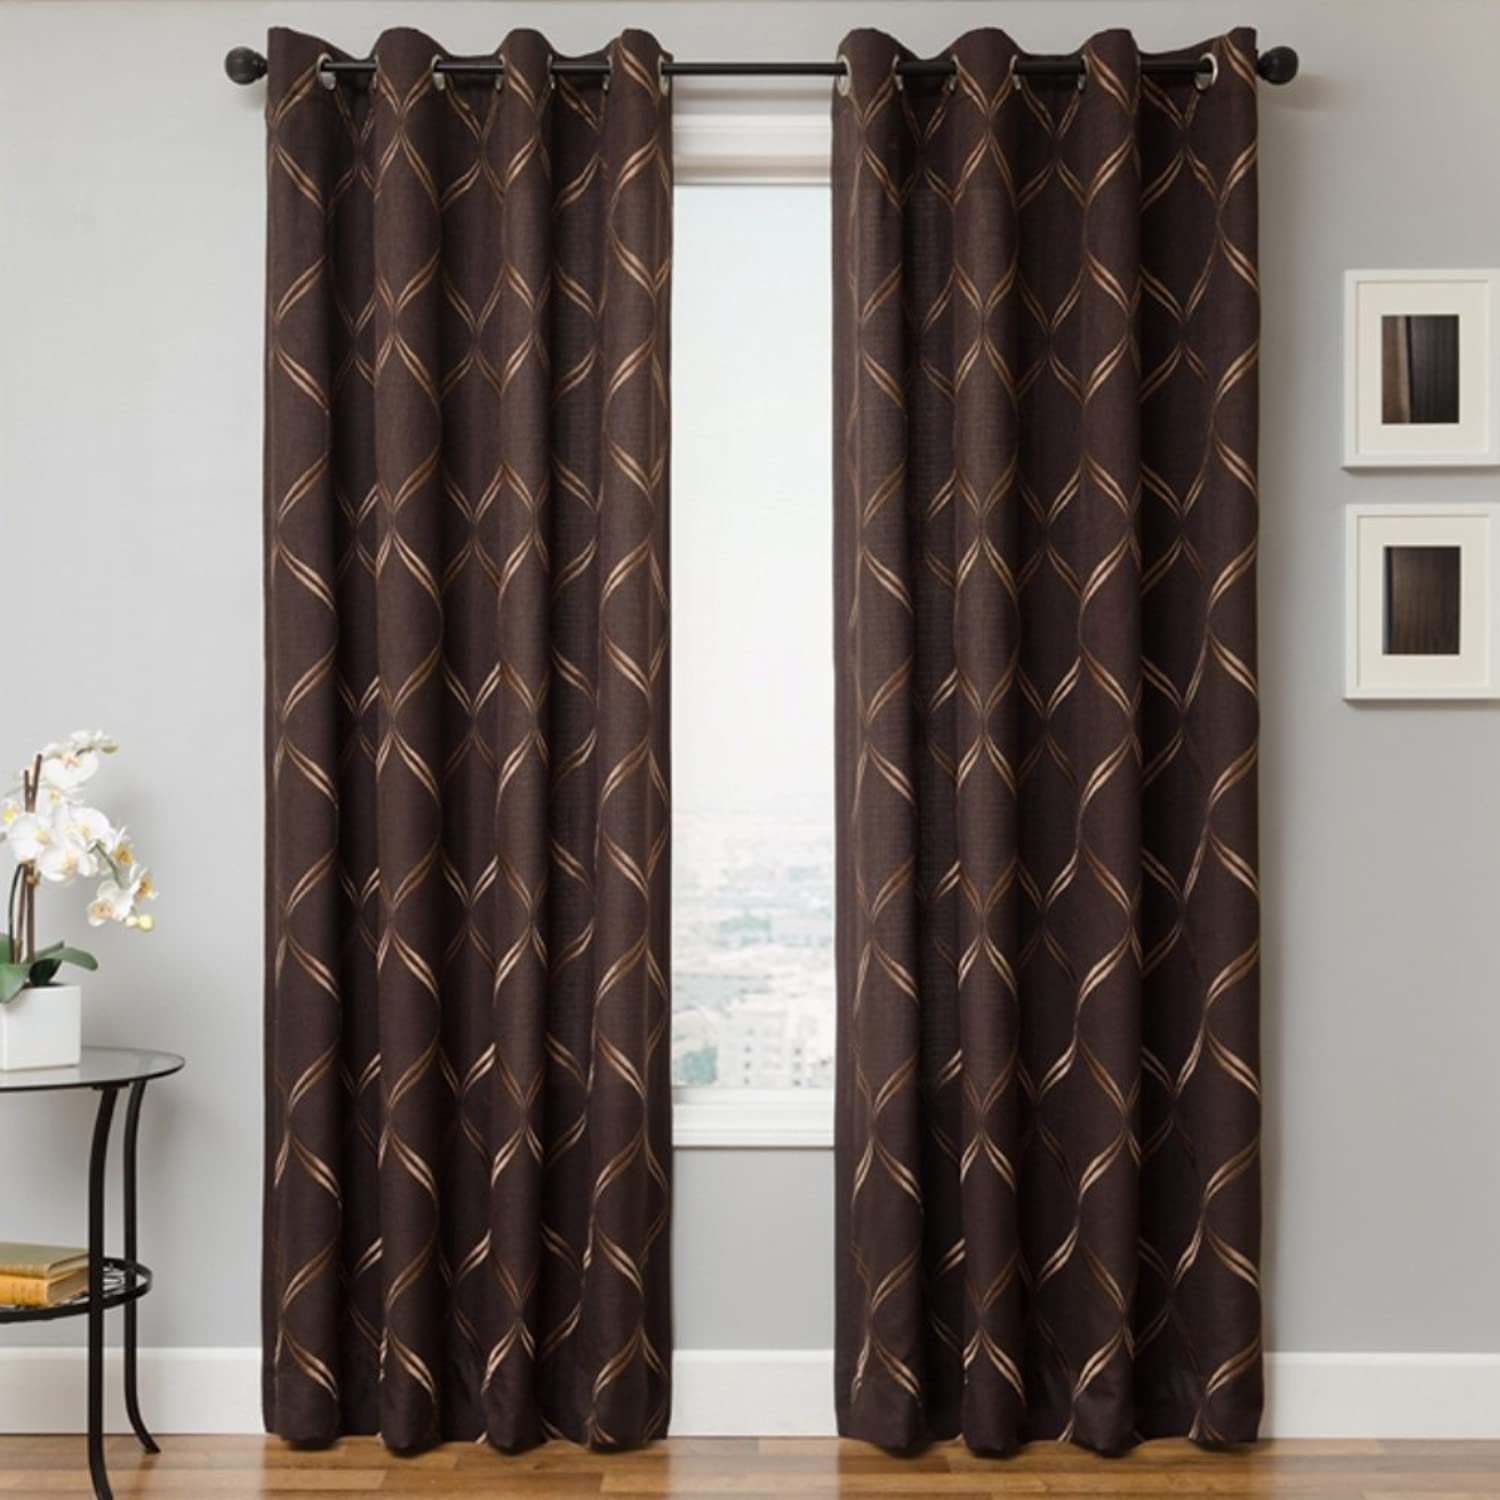 Softline Ransom Series Embroidered Window Panel Treatment Curtain Drape with Modern Grommet Top and Lush Pattern in Chocolate, Chocolate, 54  x 84